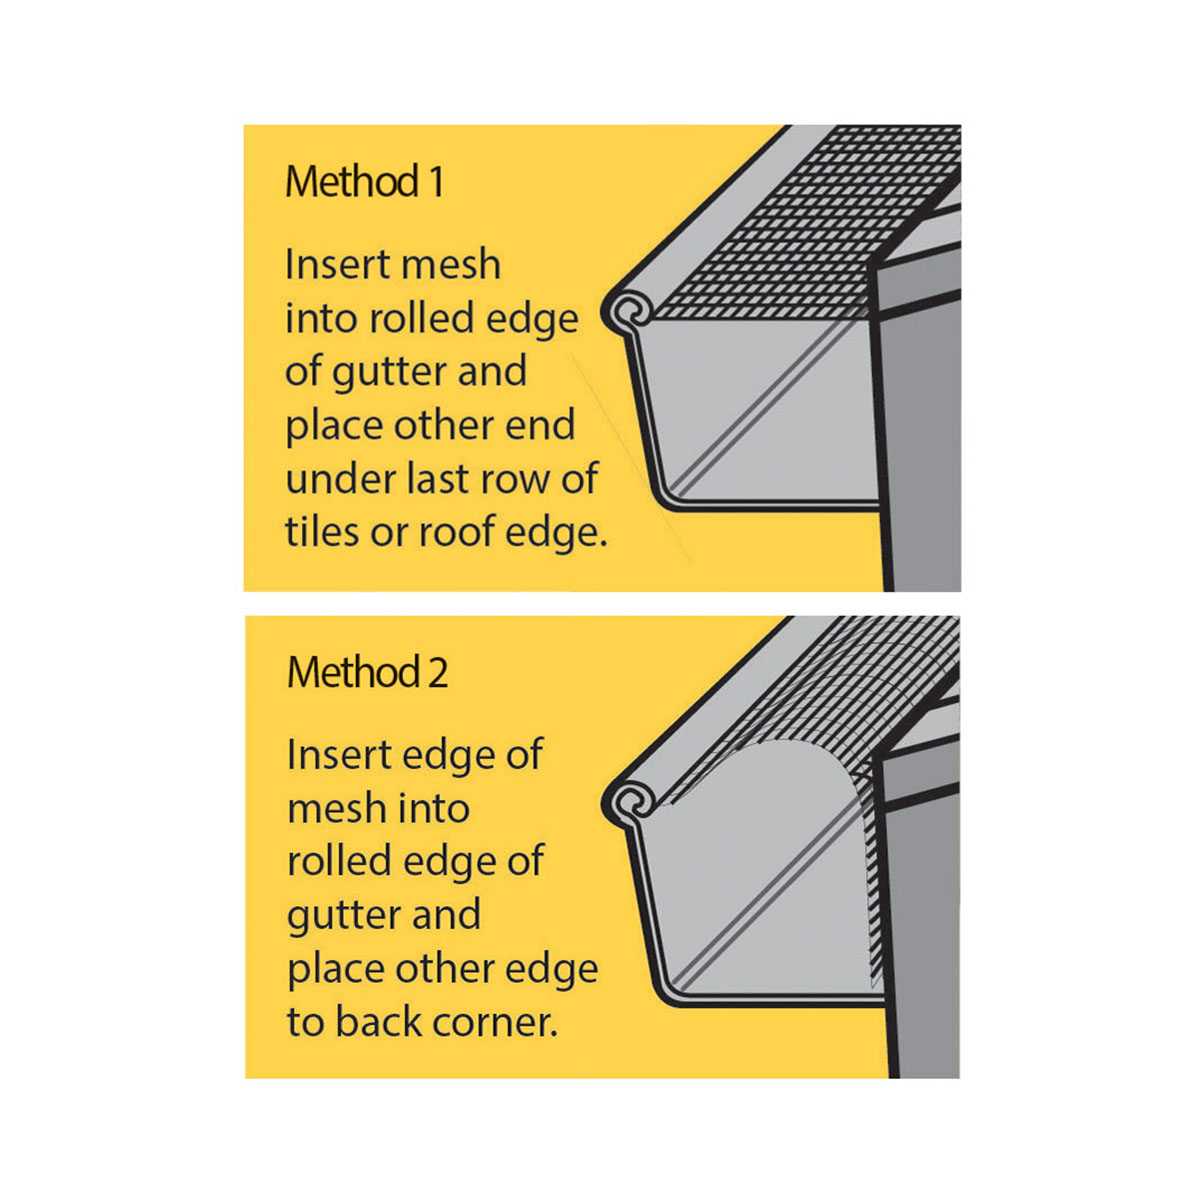 fireguard gutter guard methods